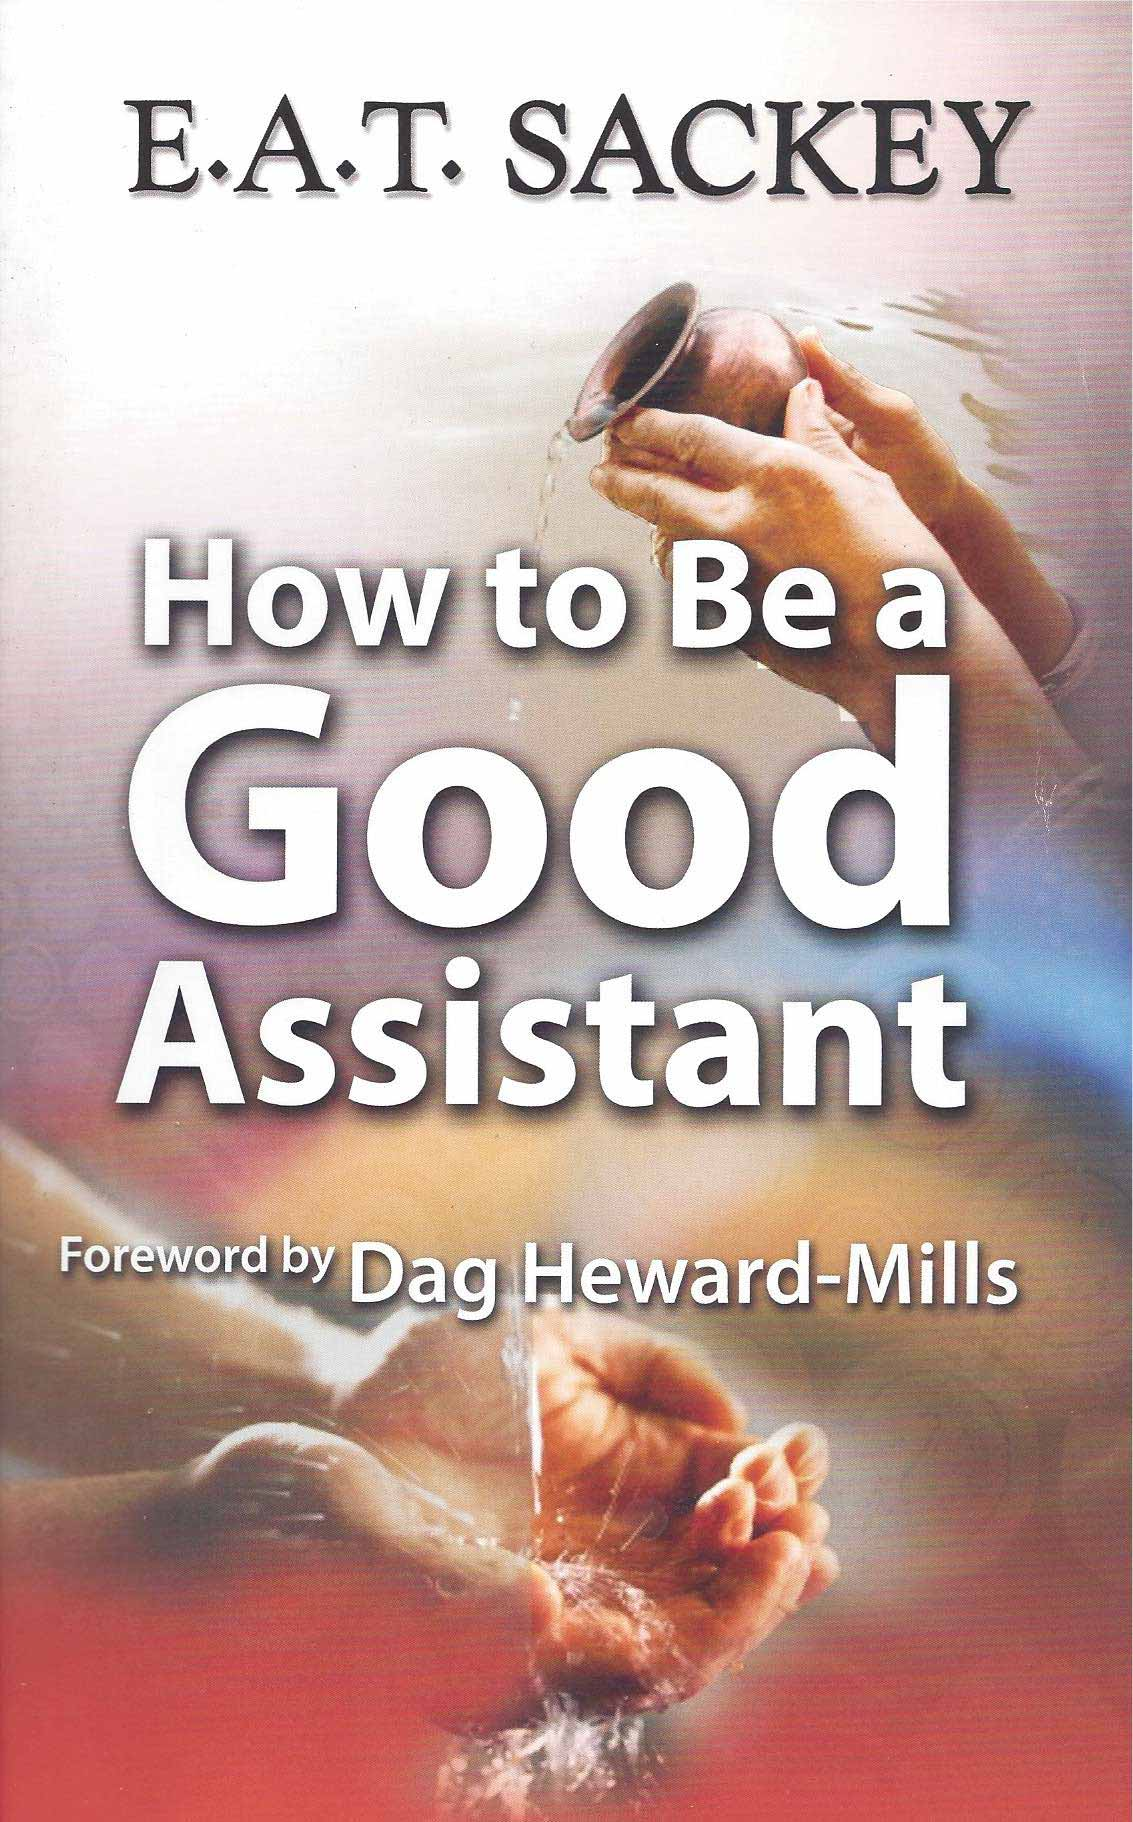 How-to-be-a-good-assistant